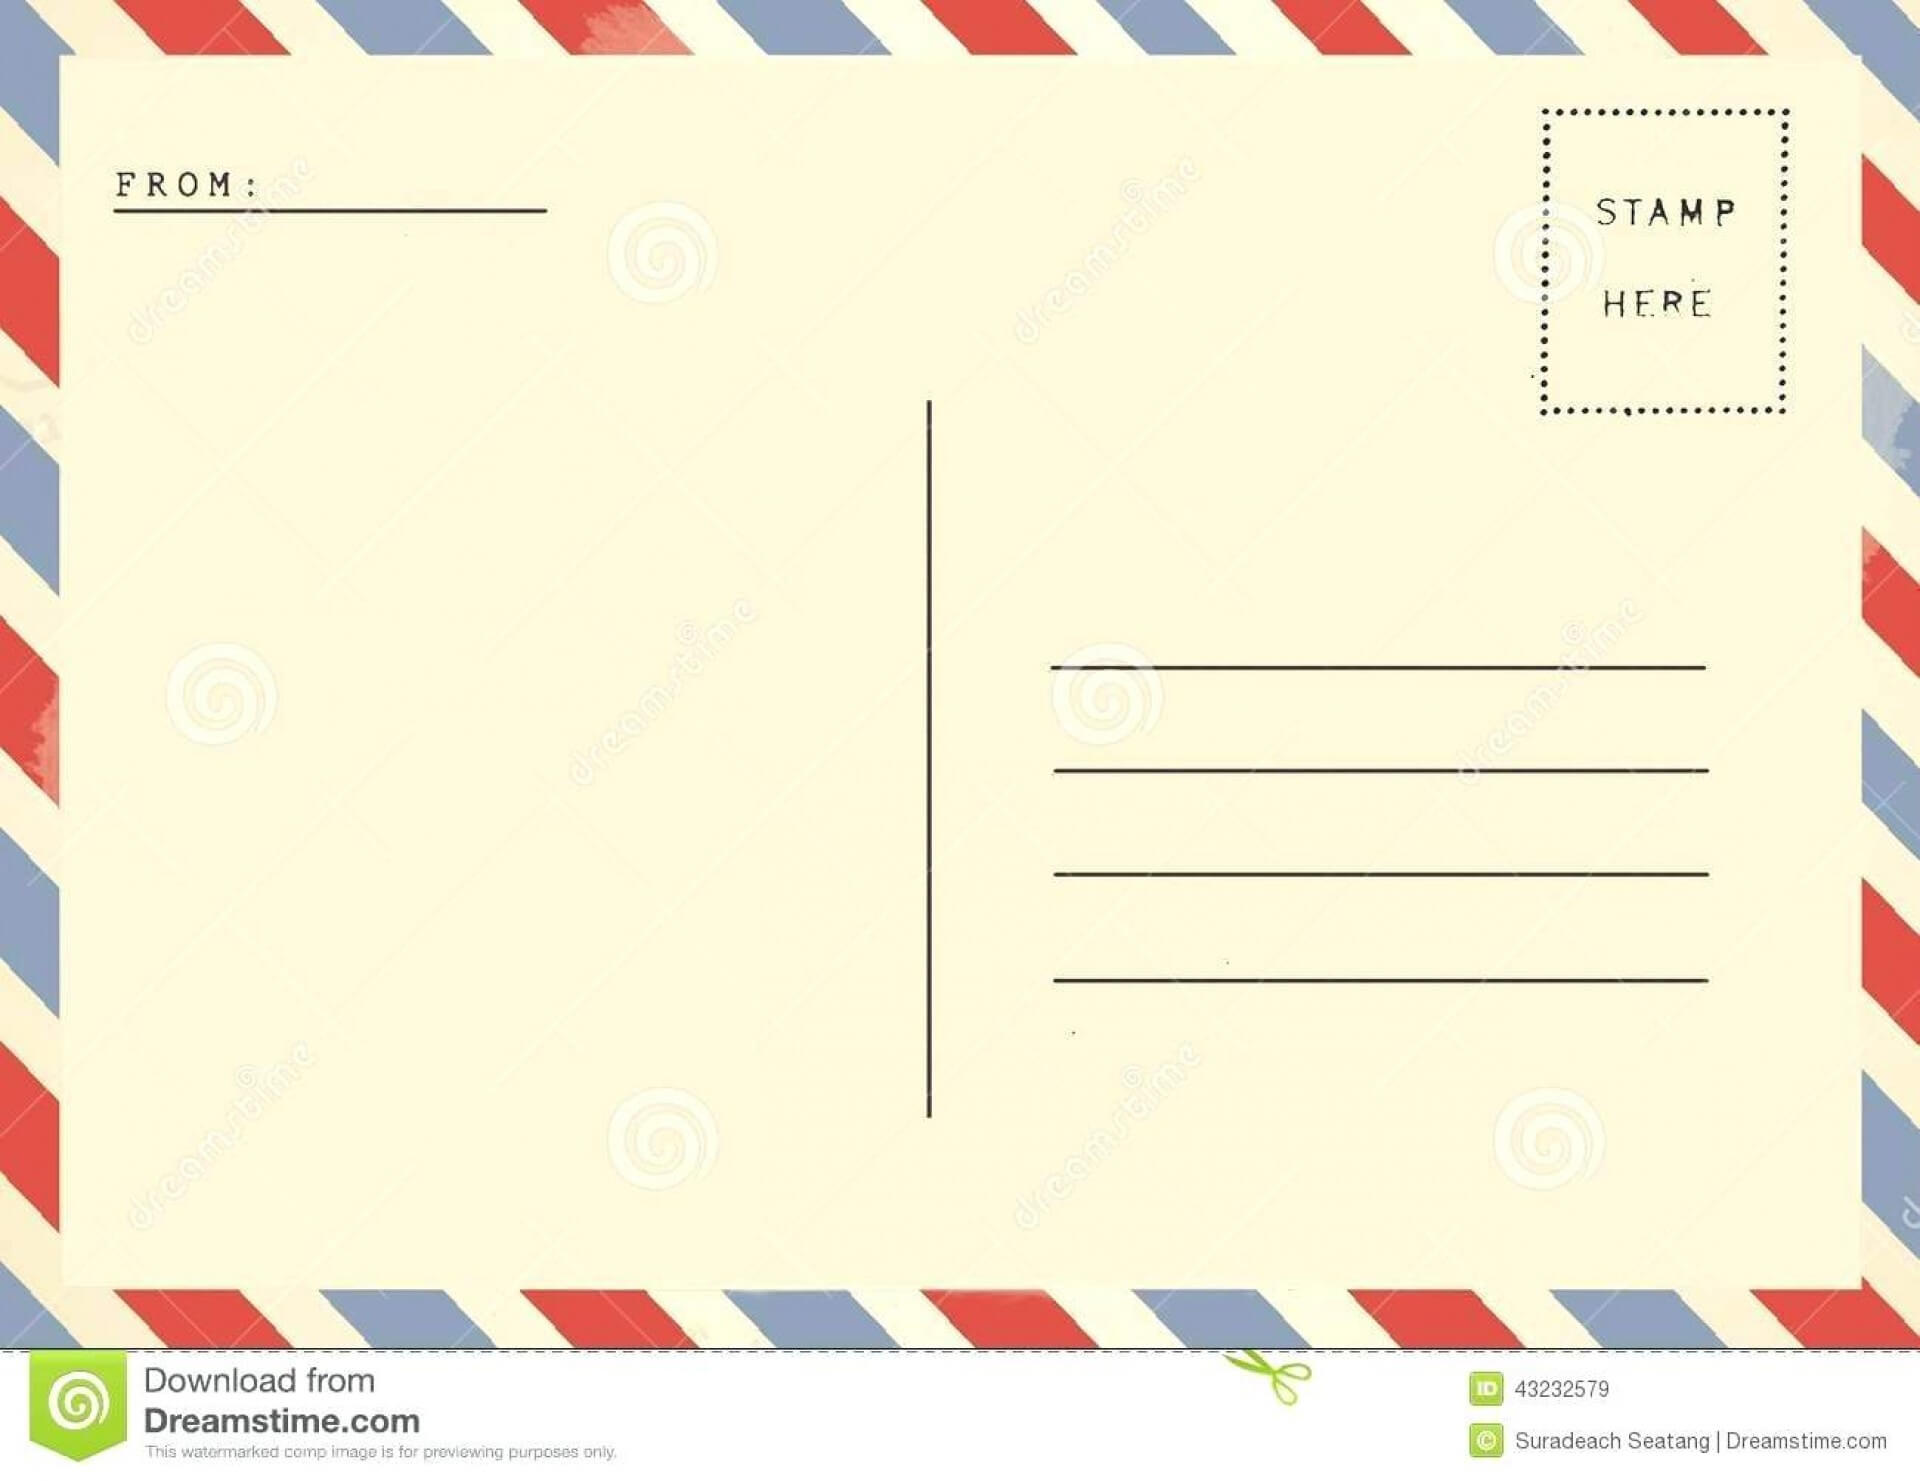 020 Postcard Template Free Download Ideas Printable Within Airmail Postcard Template